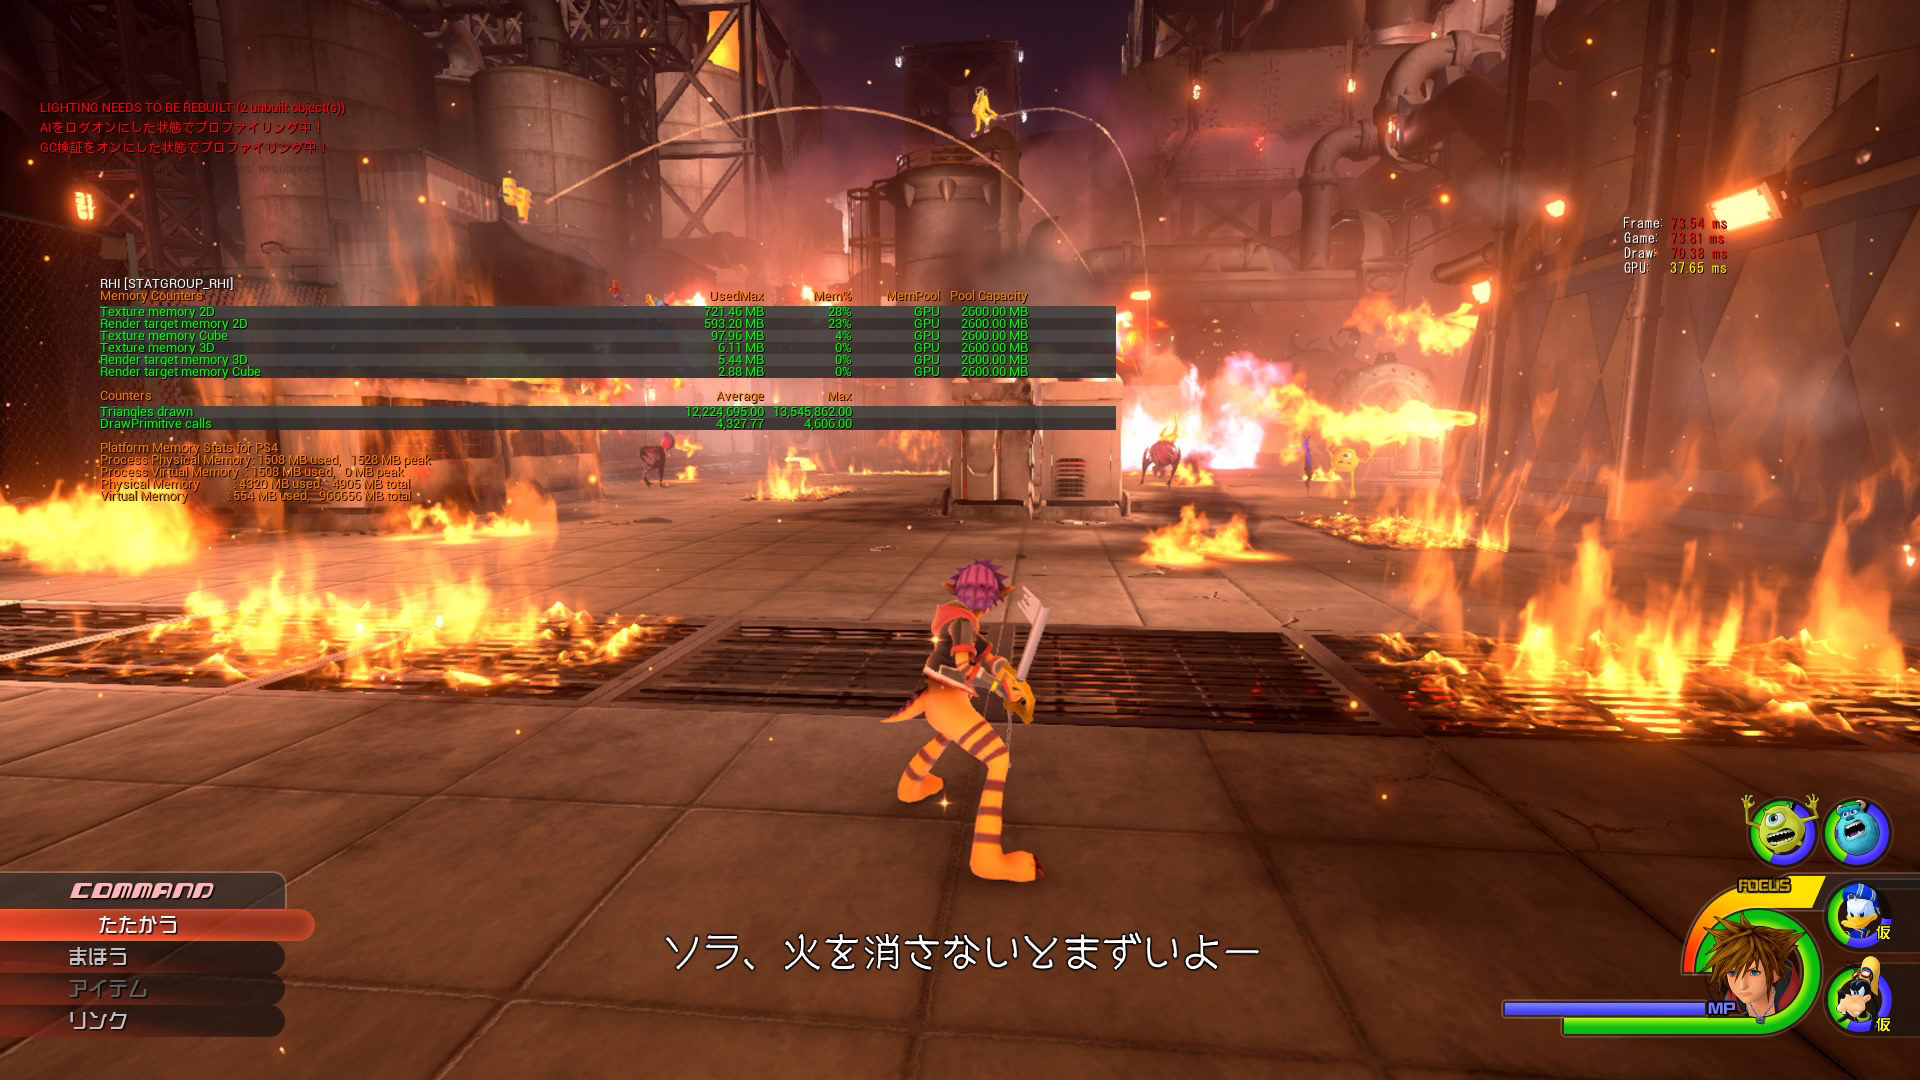 rumor leaked kingdom hearts iii screenshots reveal